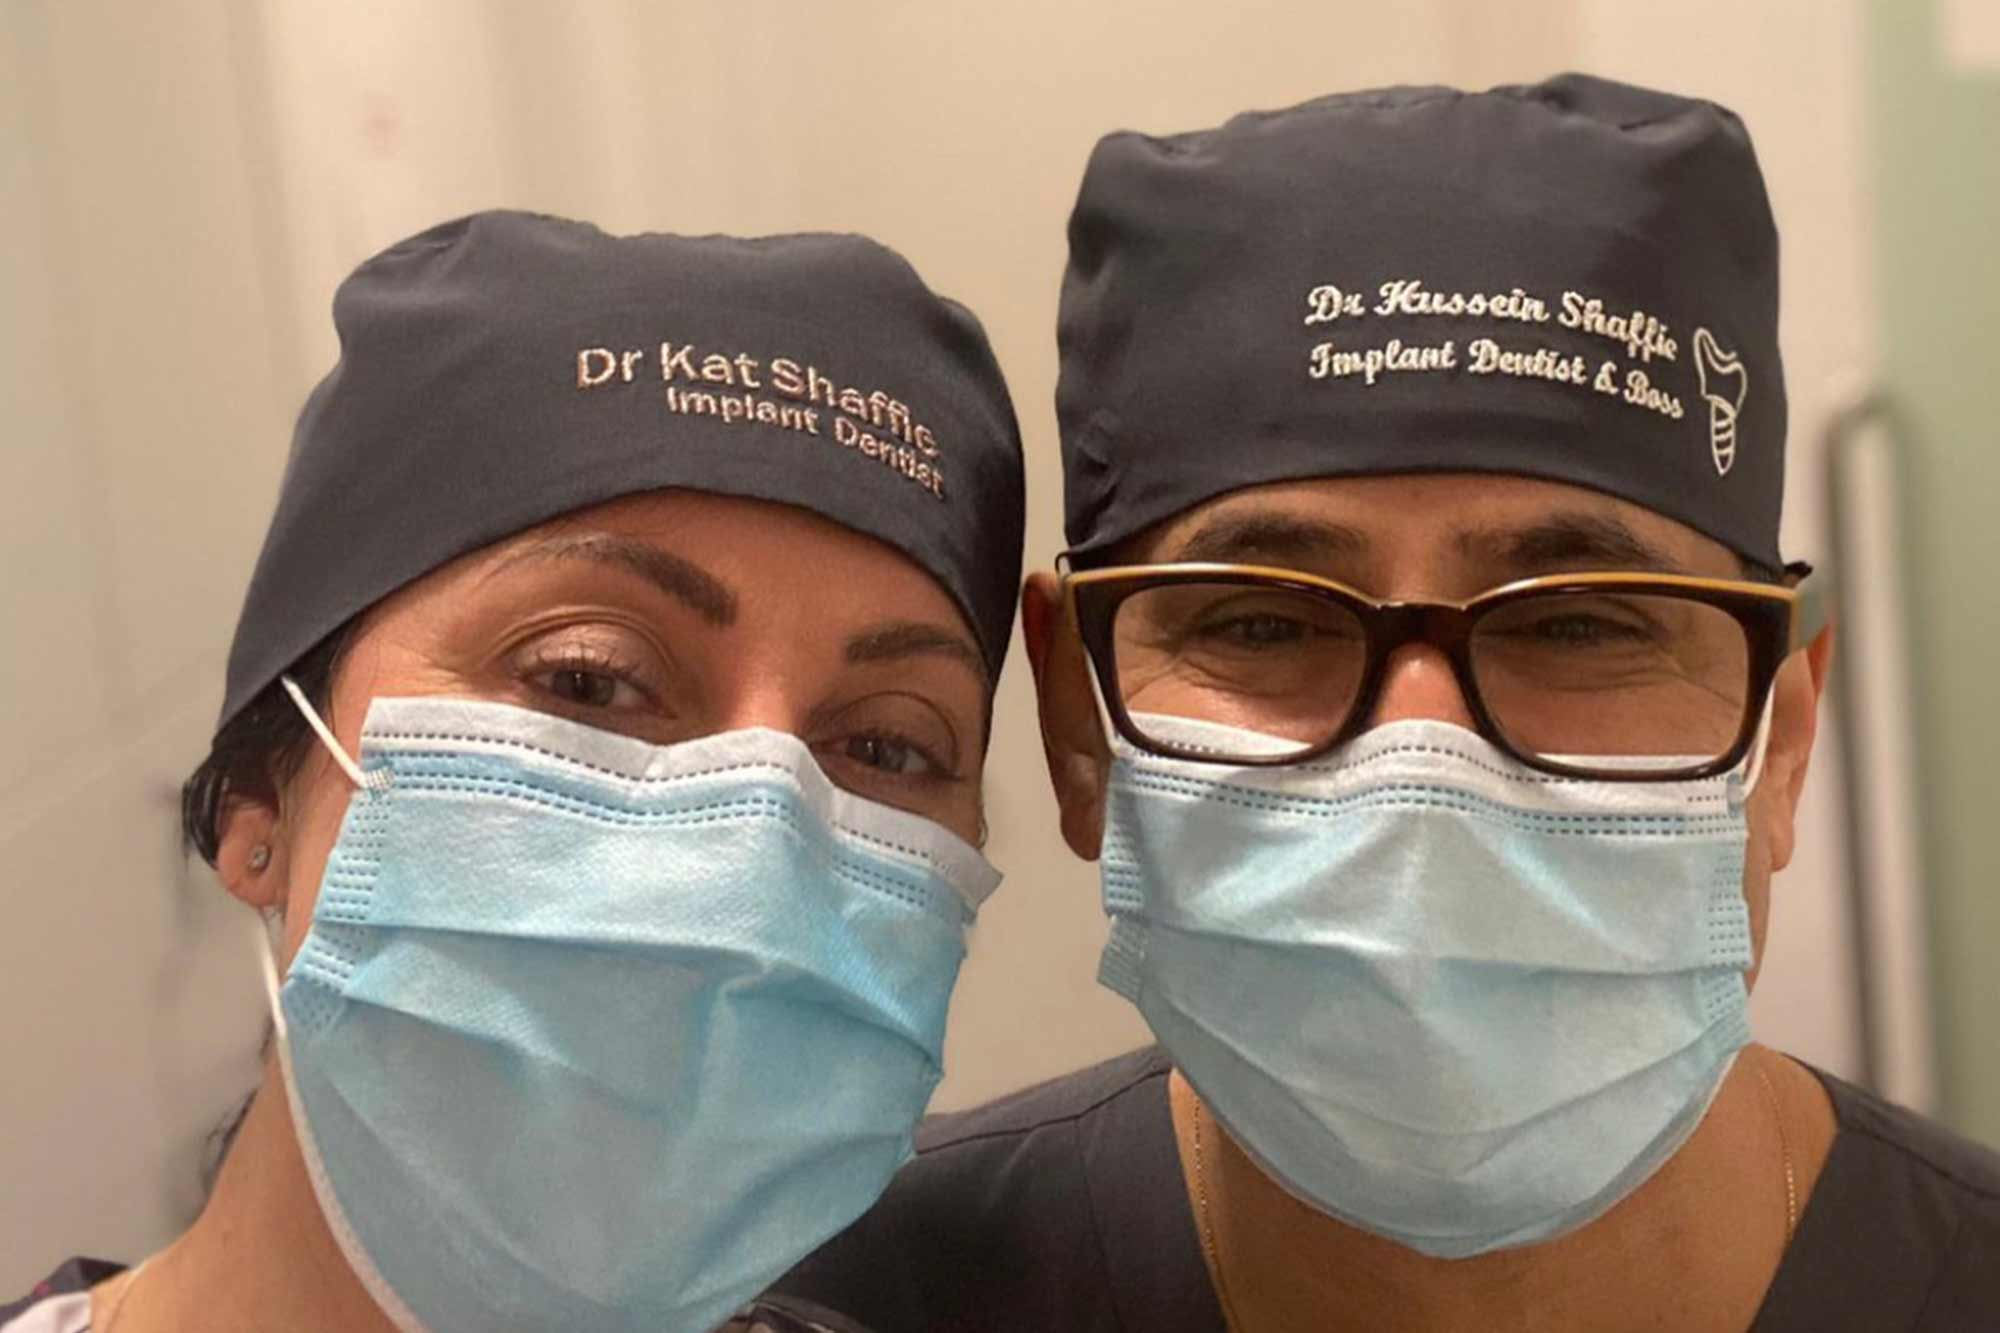 In the family –running a dental practice with your wife, brother and daughter